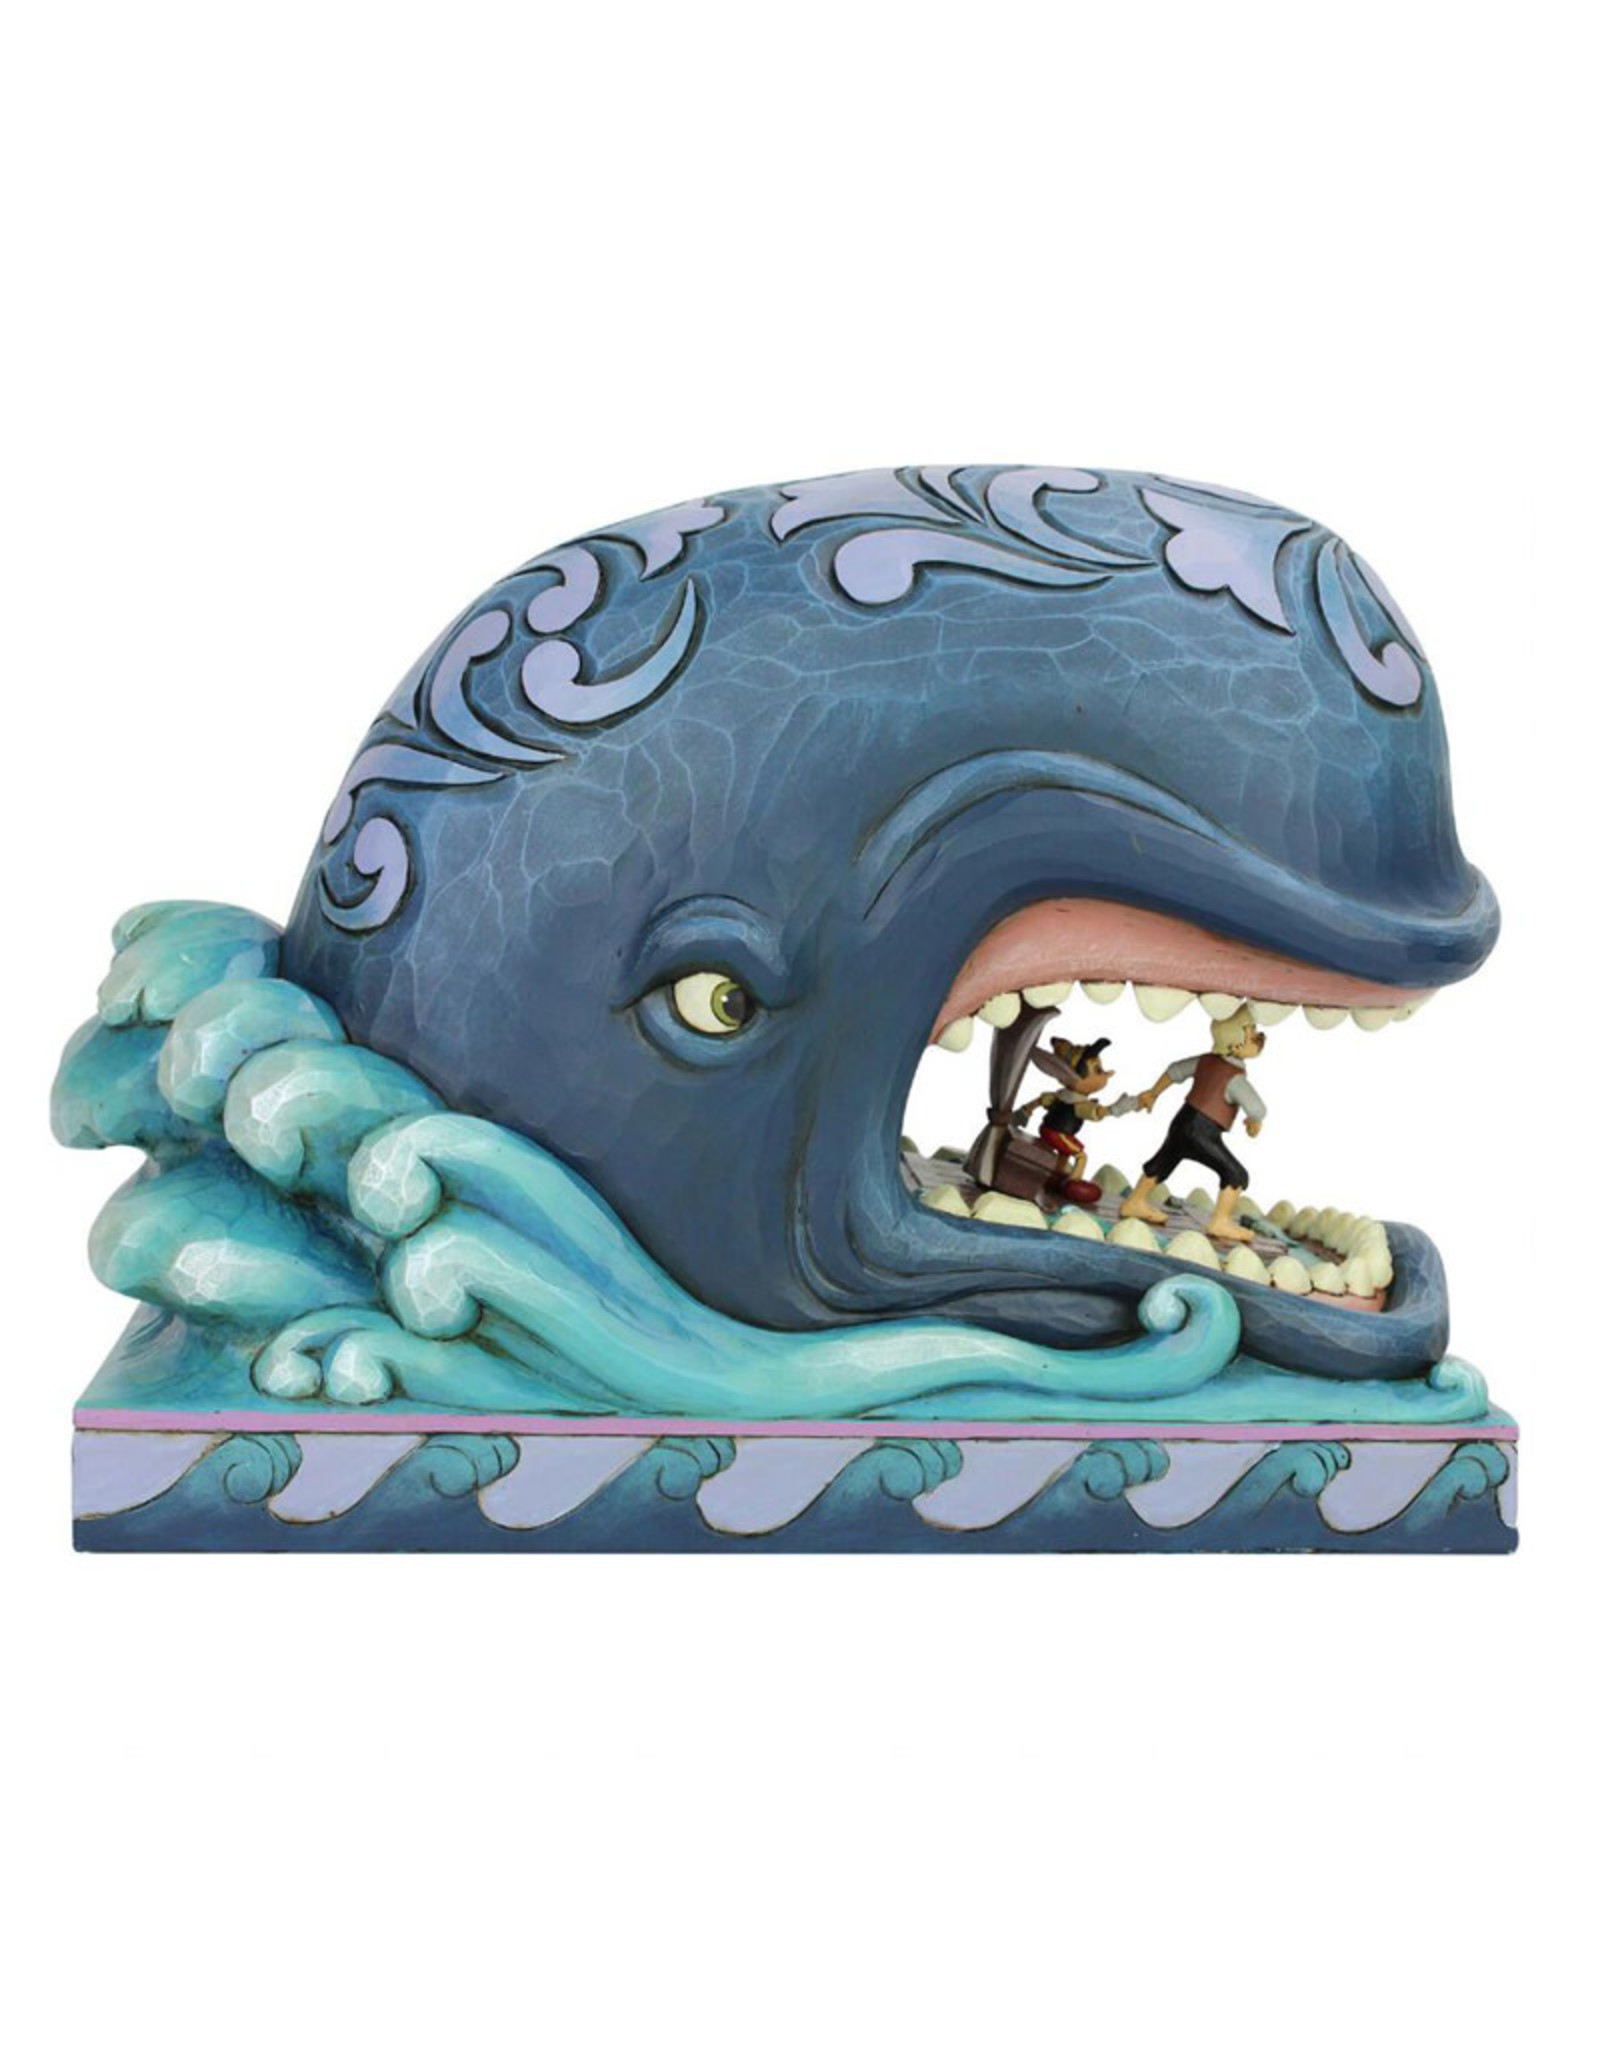 Disney Disney Pinocchio ( Disney Traditions Figurine ) A Whale of a Whale